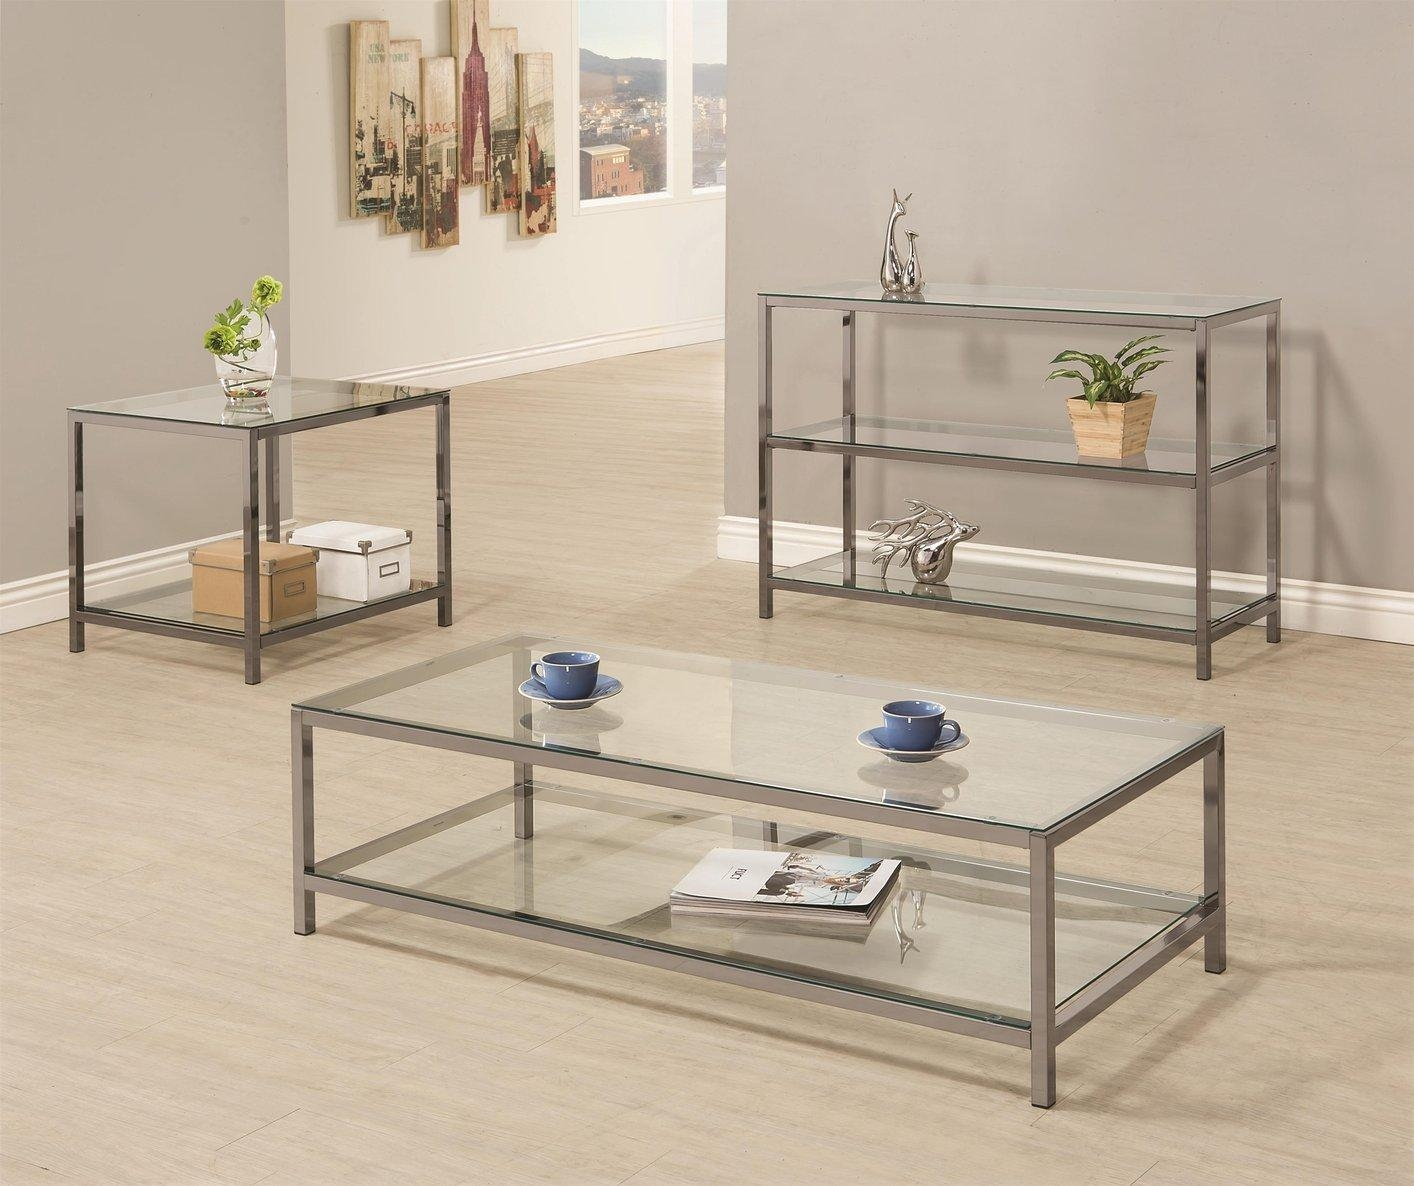 Glass Sofa Table 3 Set | Med Art Home Design Posters For Metal Glass Sofa Tables (View 4 of 22)